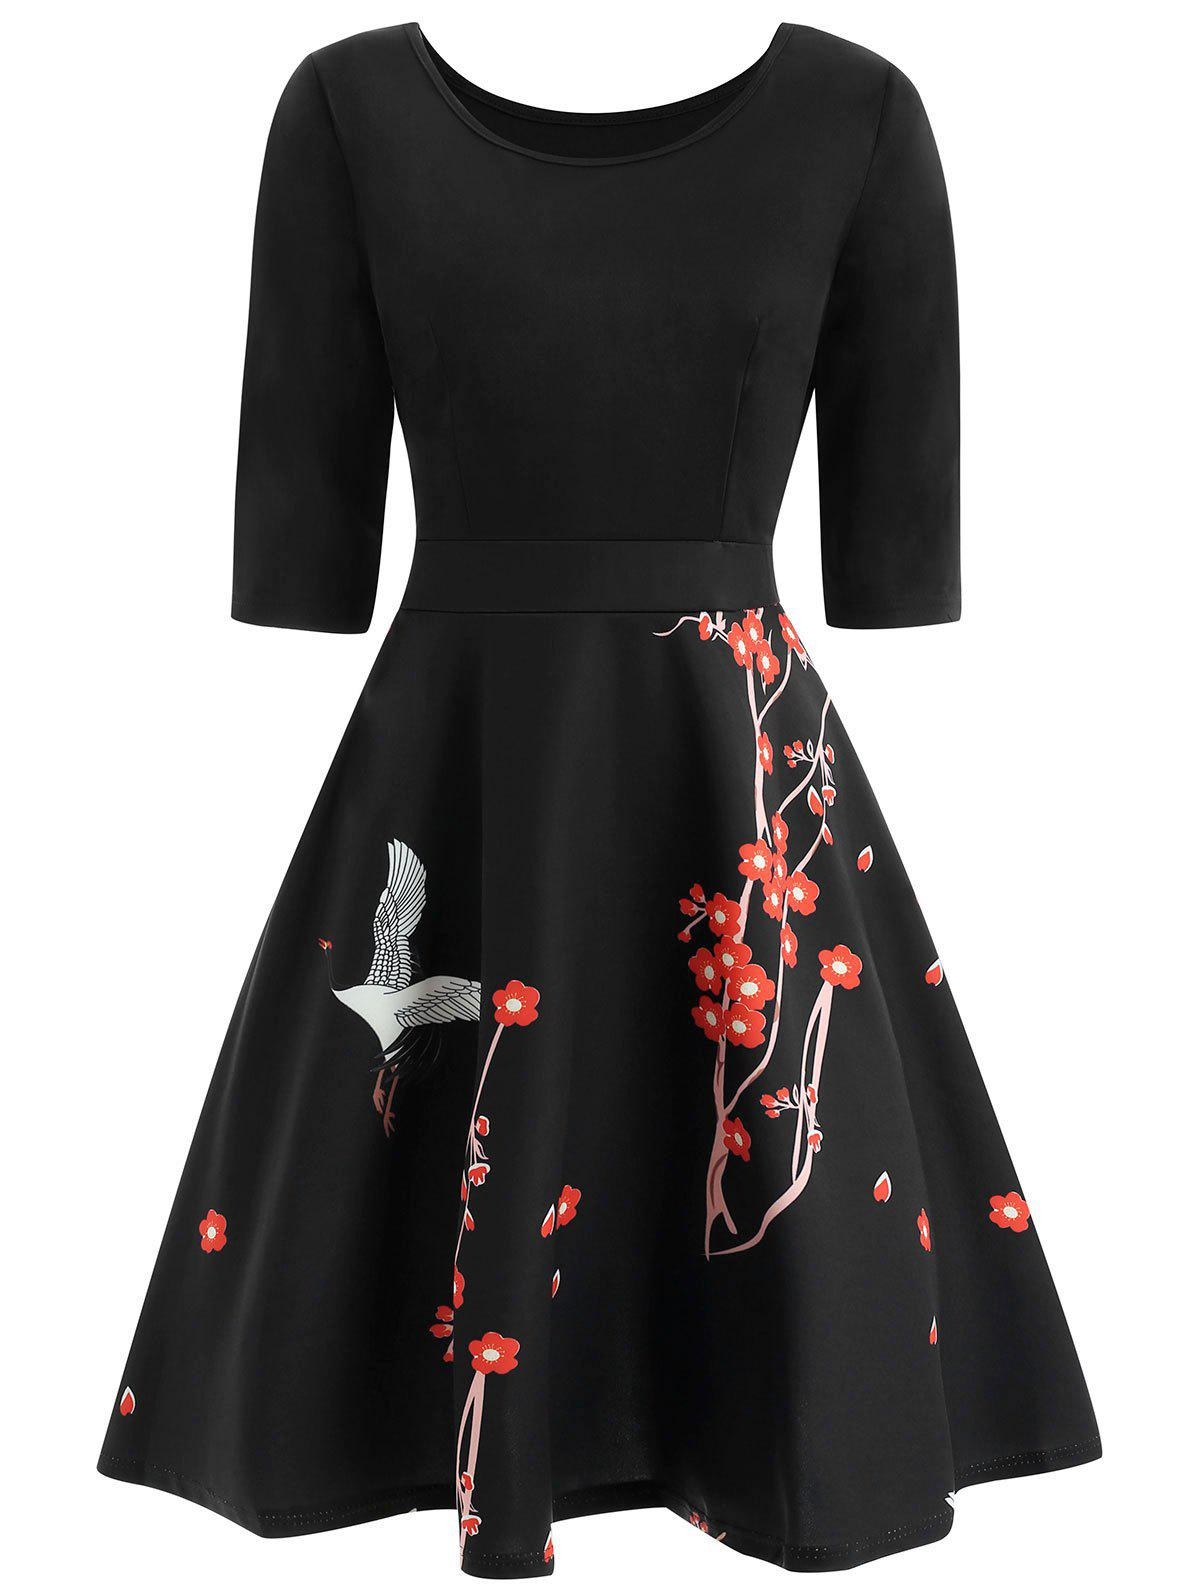 Wintersweet Print High Waist Vintage Dress - BLACK M